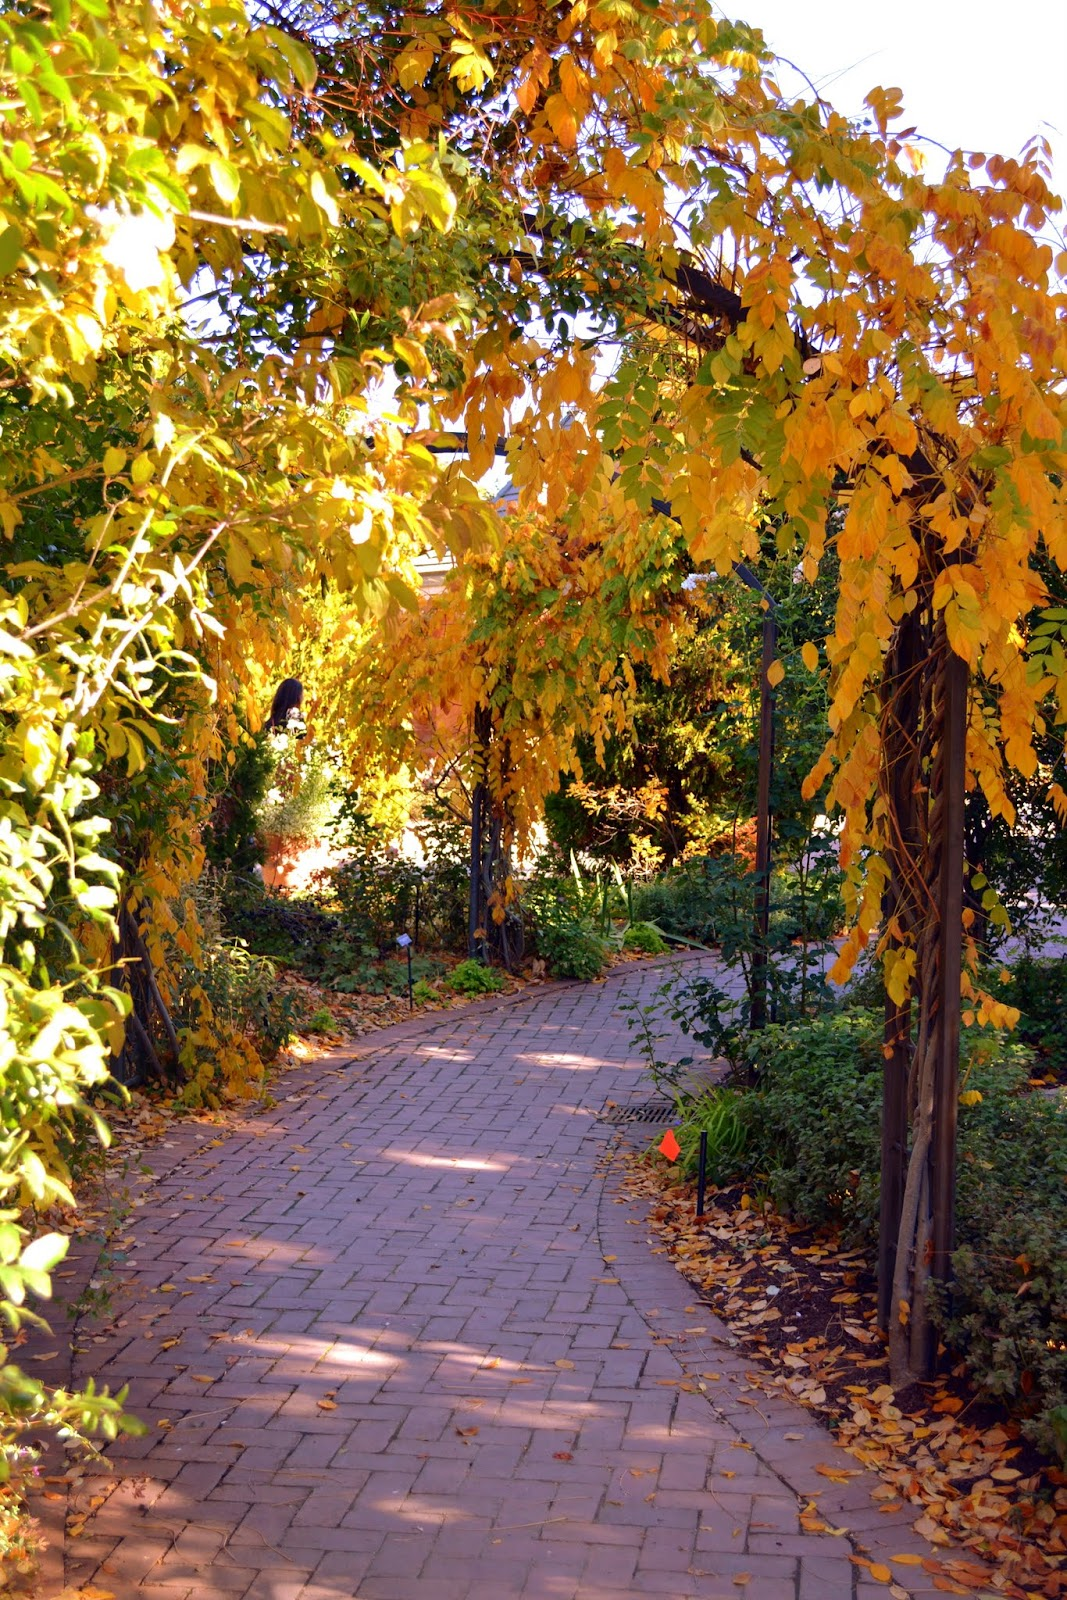 Mille Fiori Favoriti: The Denver Botanic Garden in Autumn